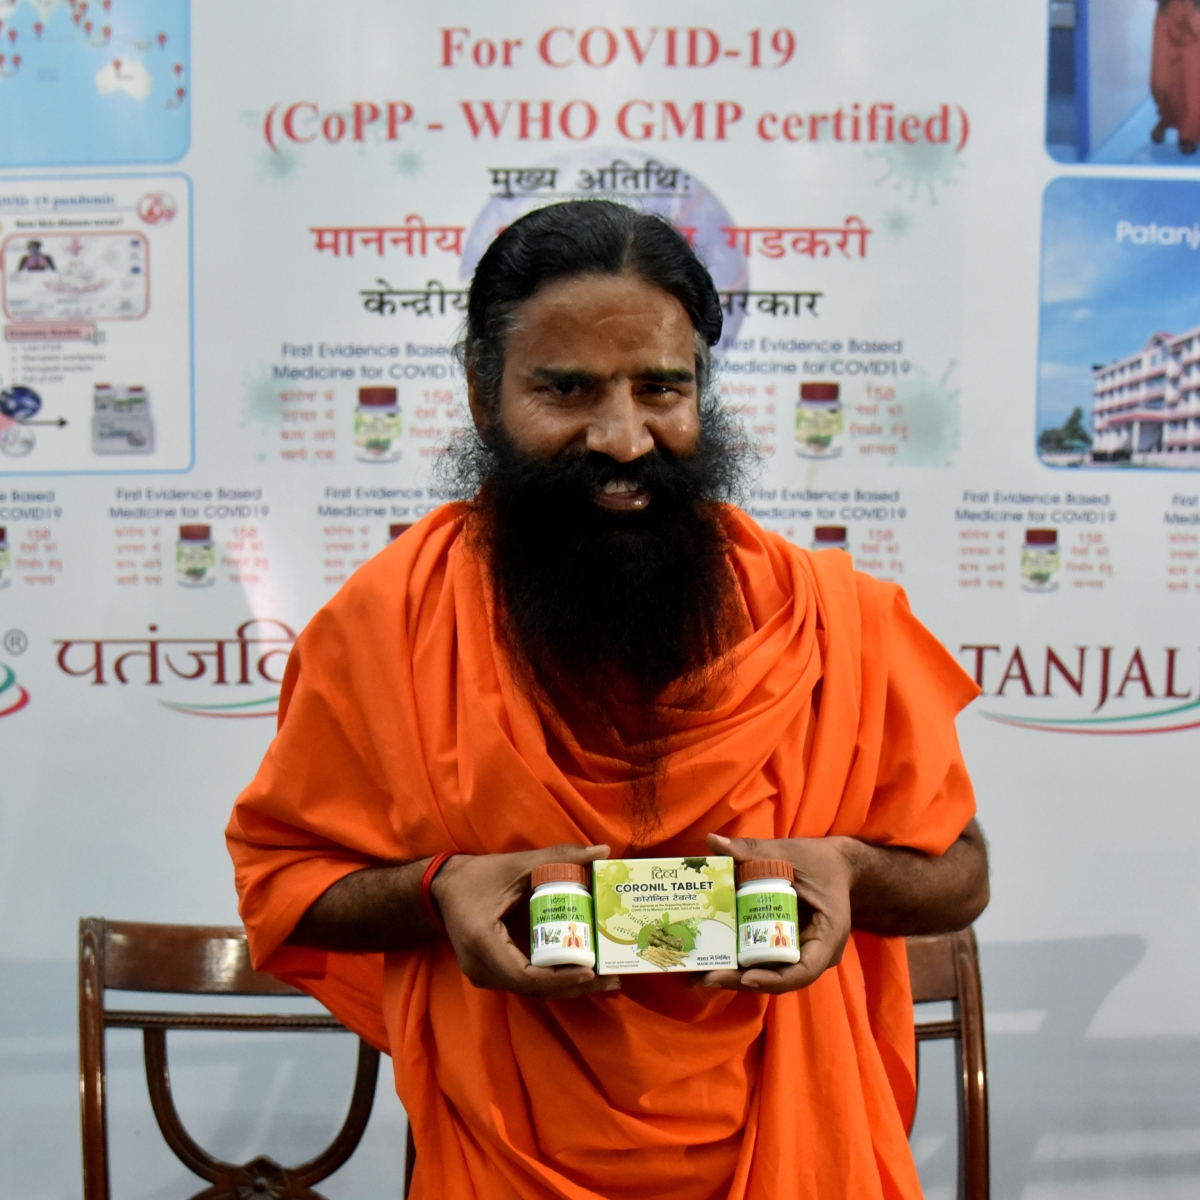 Patanjali 'appalled' by IMA's remarks on Coronil, says Harsh Vardhan didn't endorse any ayurvedic medicine